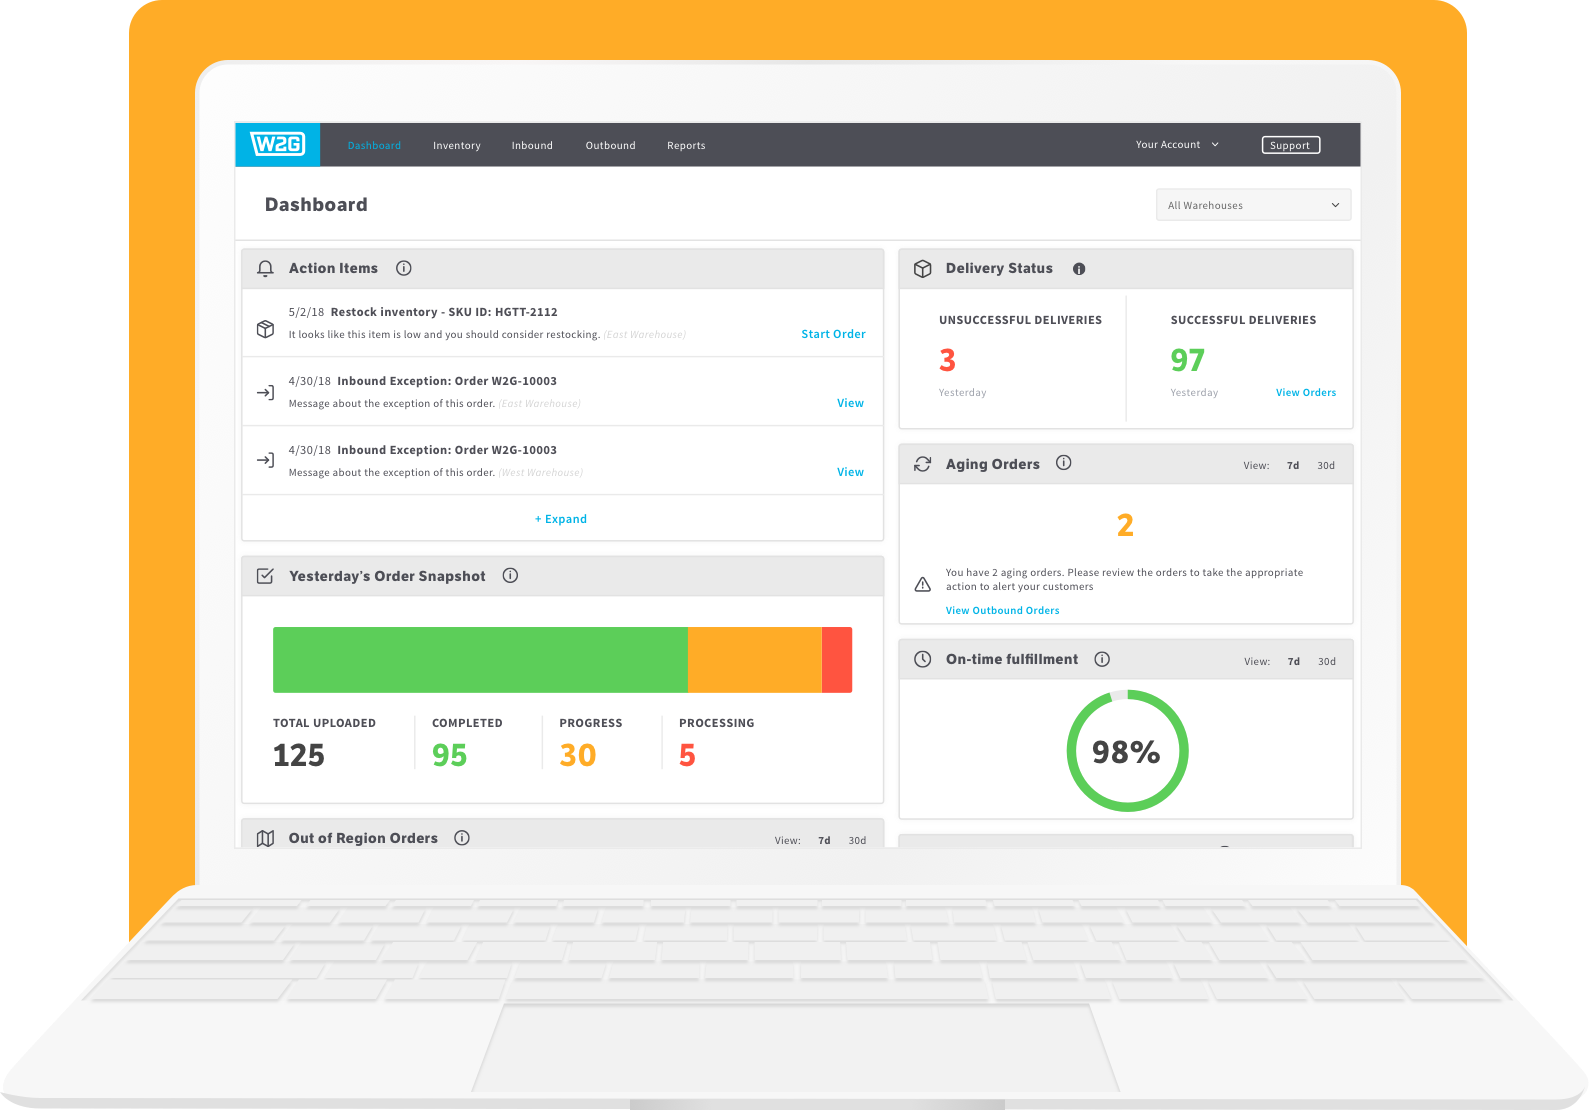 Warehouse Management System Dashboard